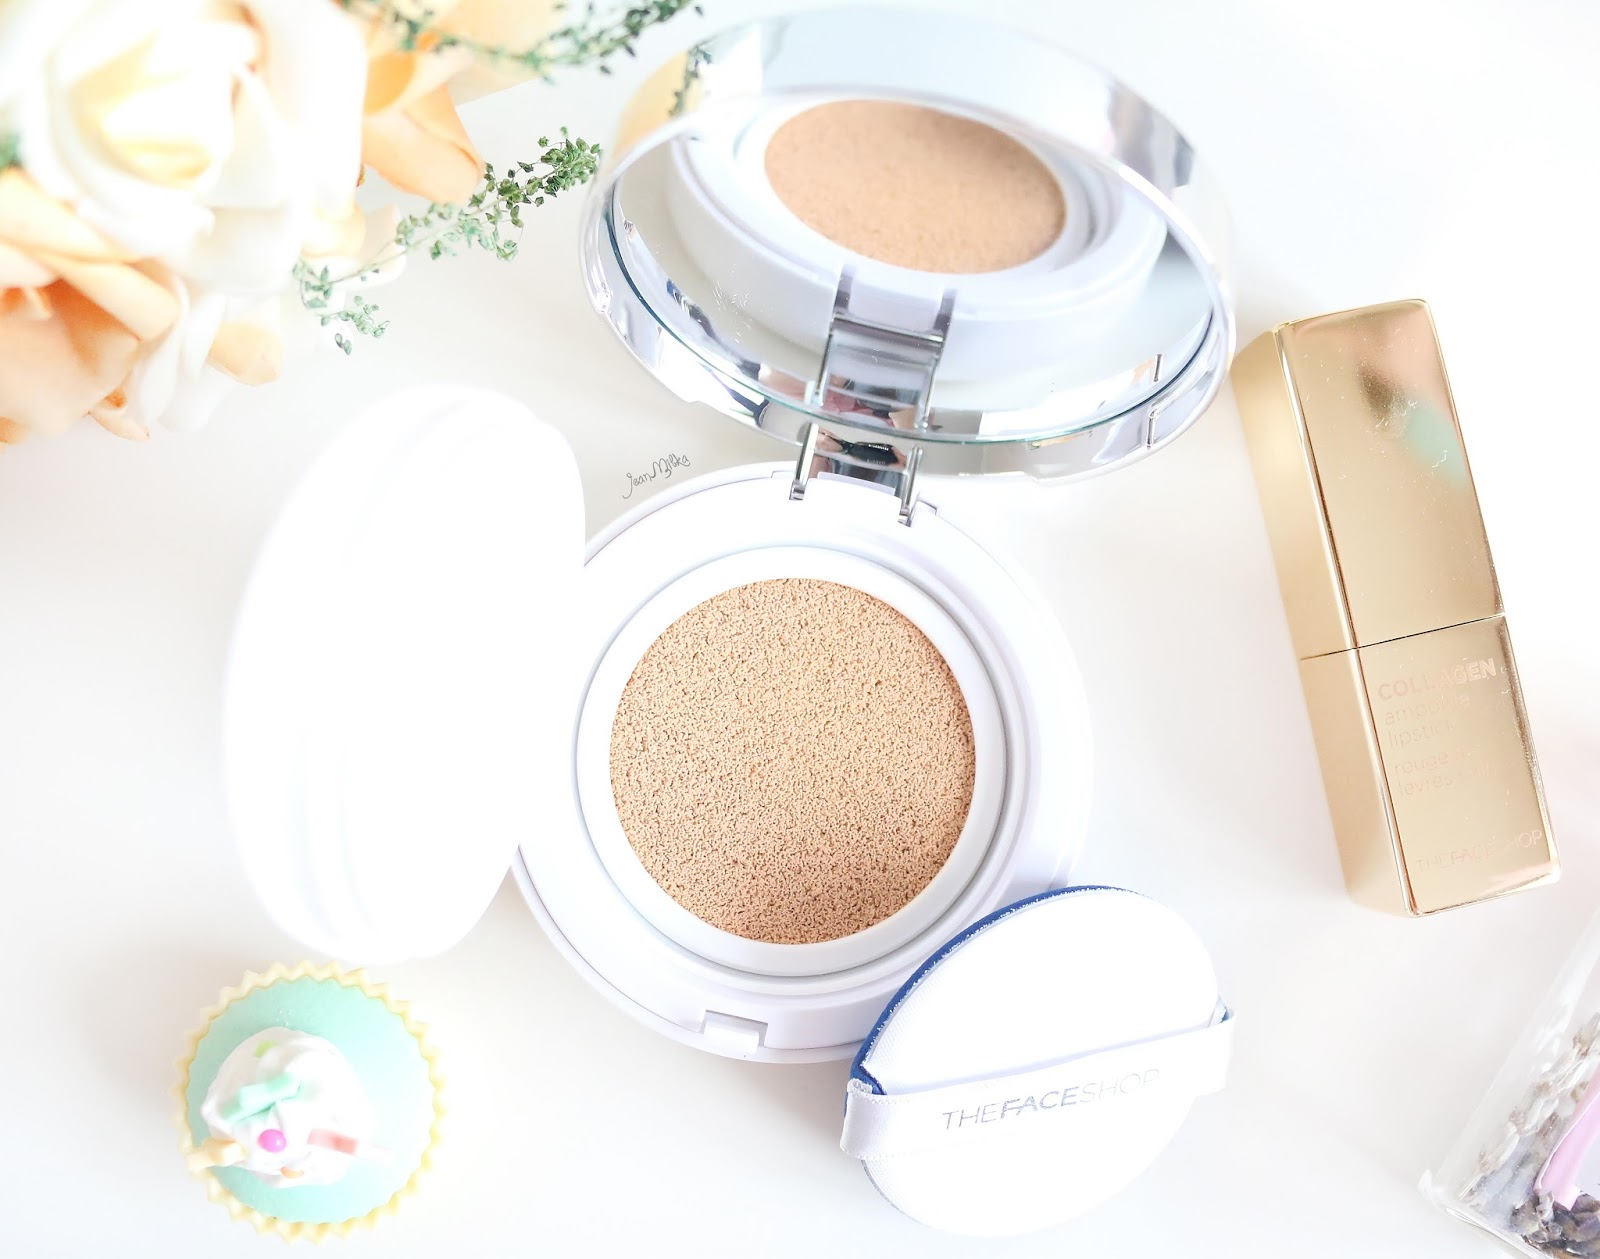 the face shop, the face shop cushion, the face shop cc cushion, cc cushion, cushion, cc cushion ultra moist, cc cushion intense cover, tfs, review, review cushion, beauty blog